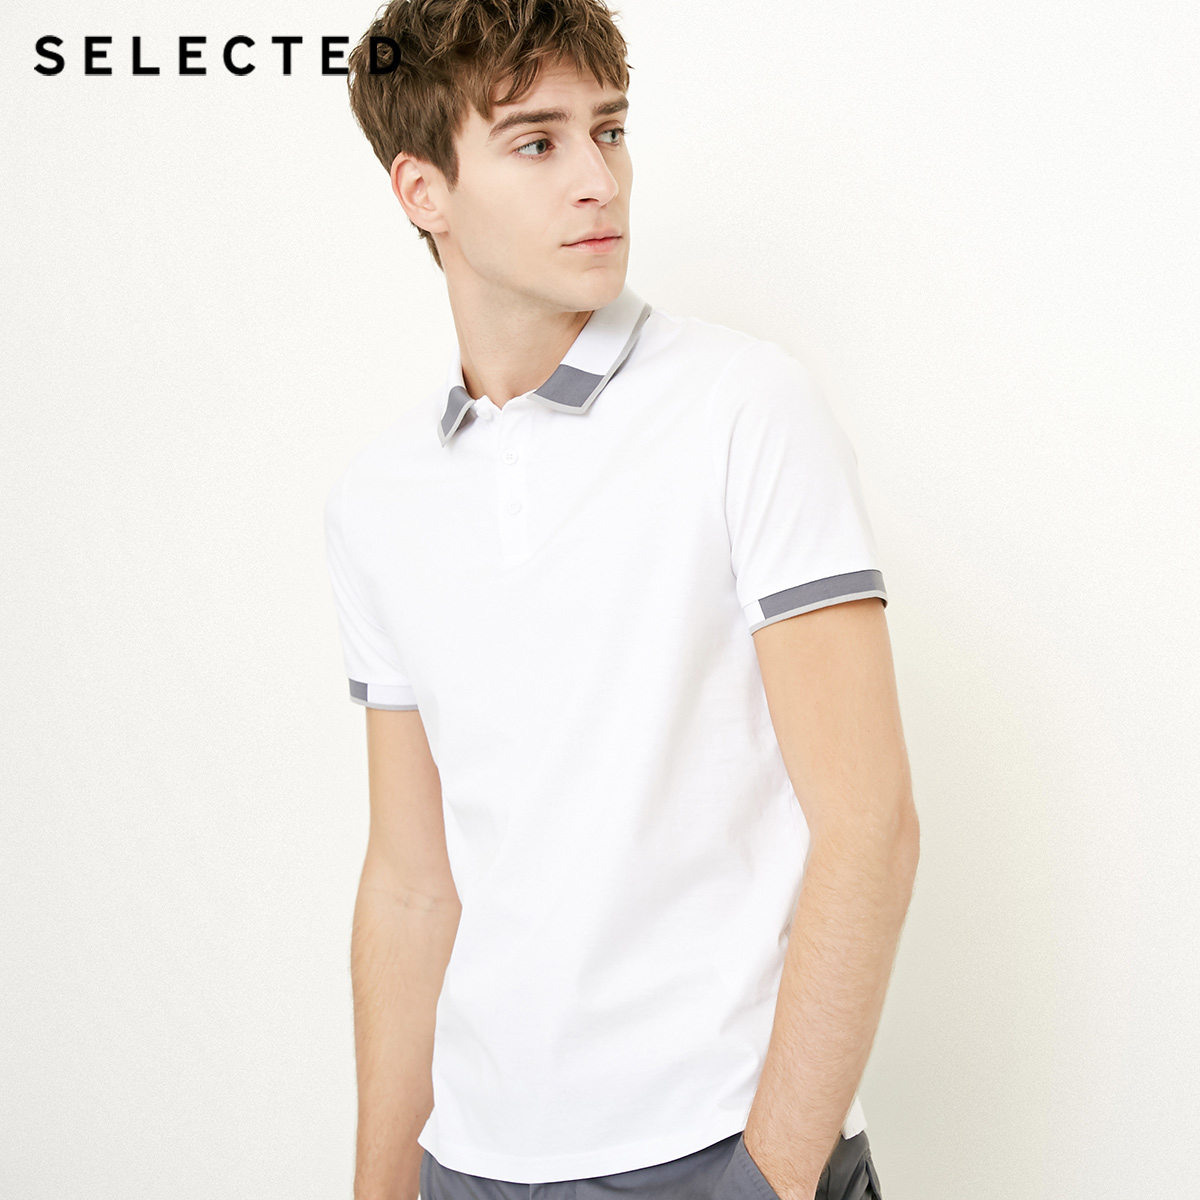 Image 2 - SELECTED  Mens Cotton Color Splicing Leisure  Collar Poloshit S41823Z523T-Shirts